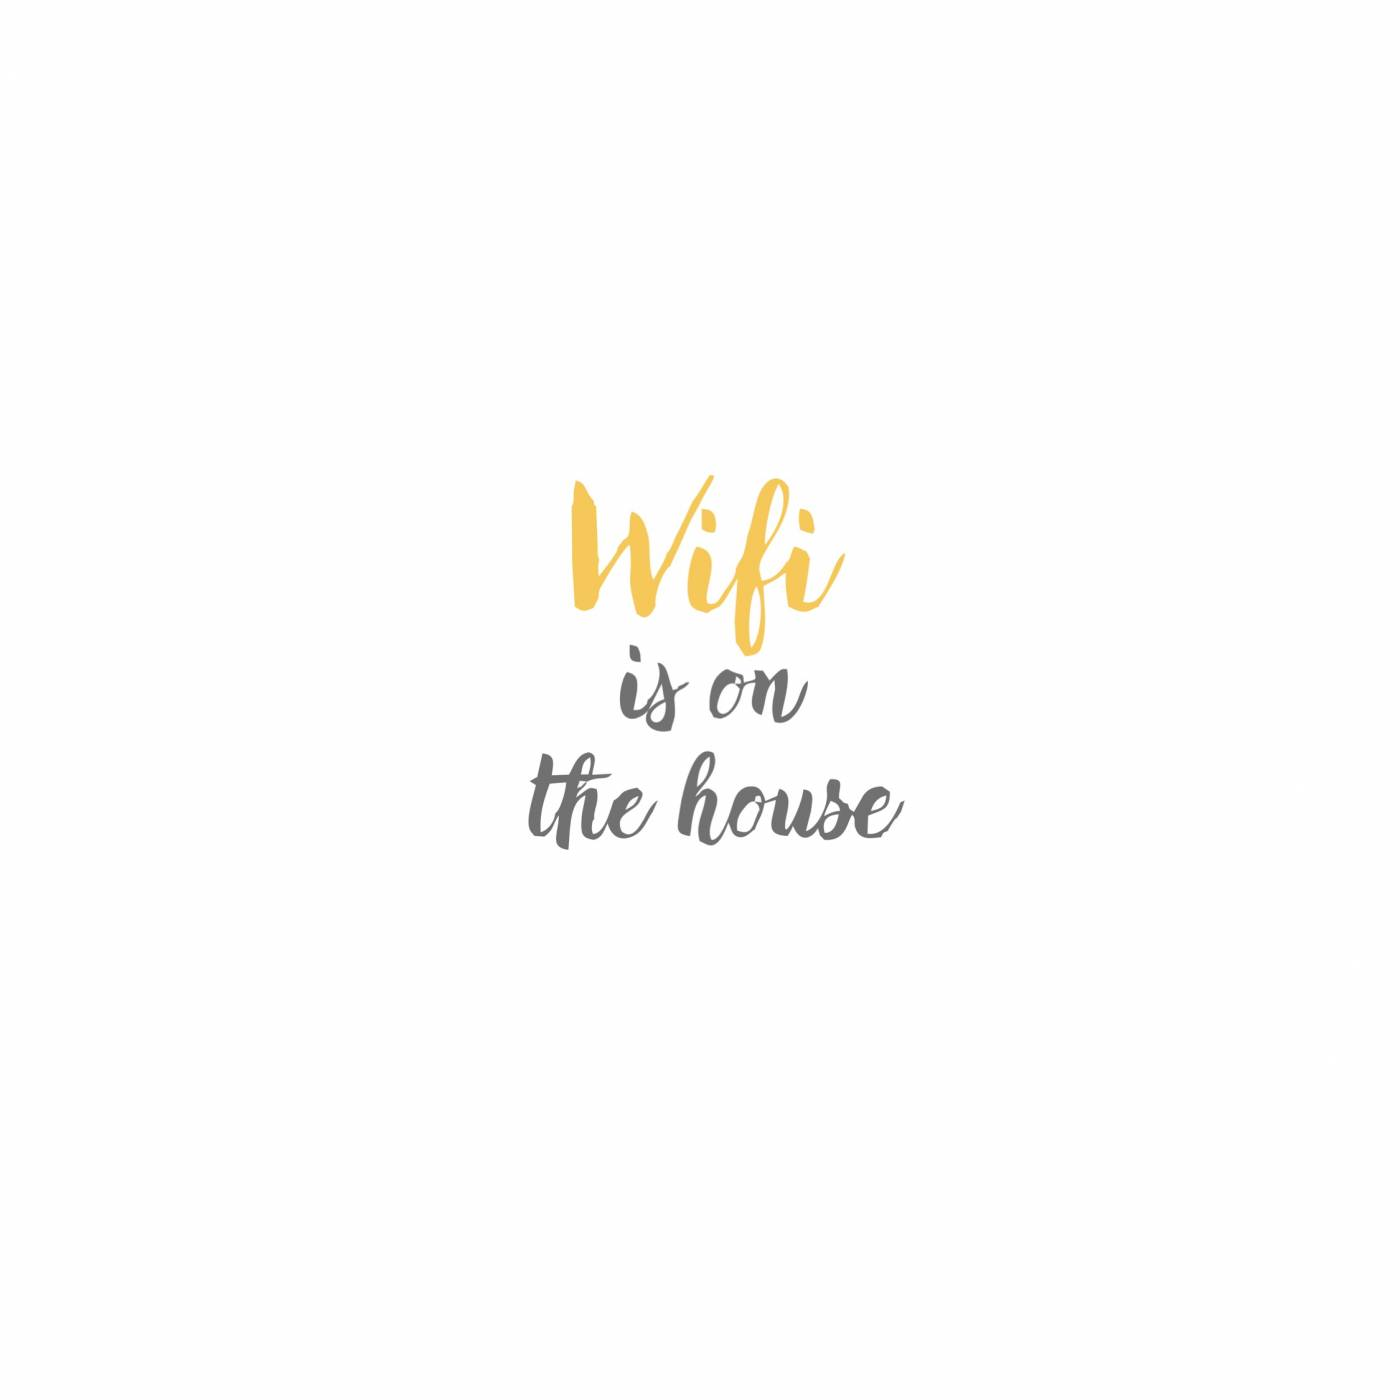 Wifi is in the house